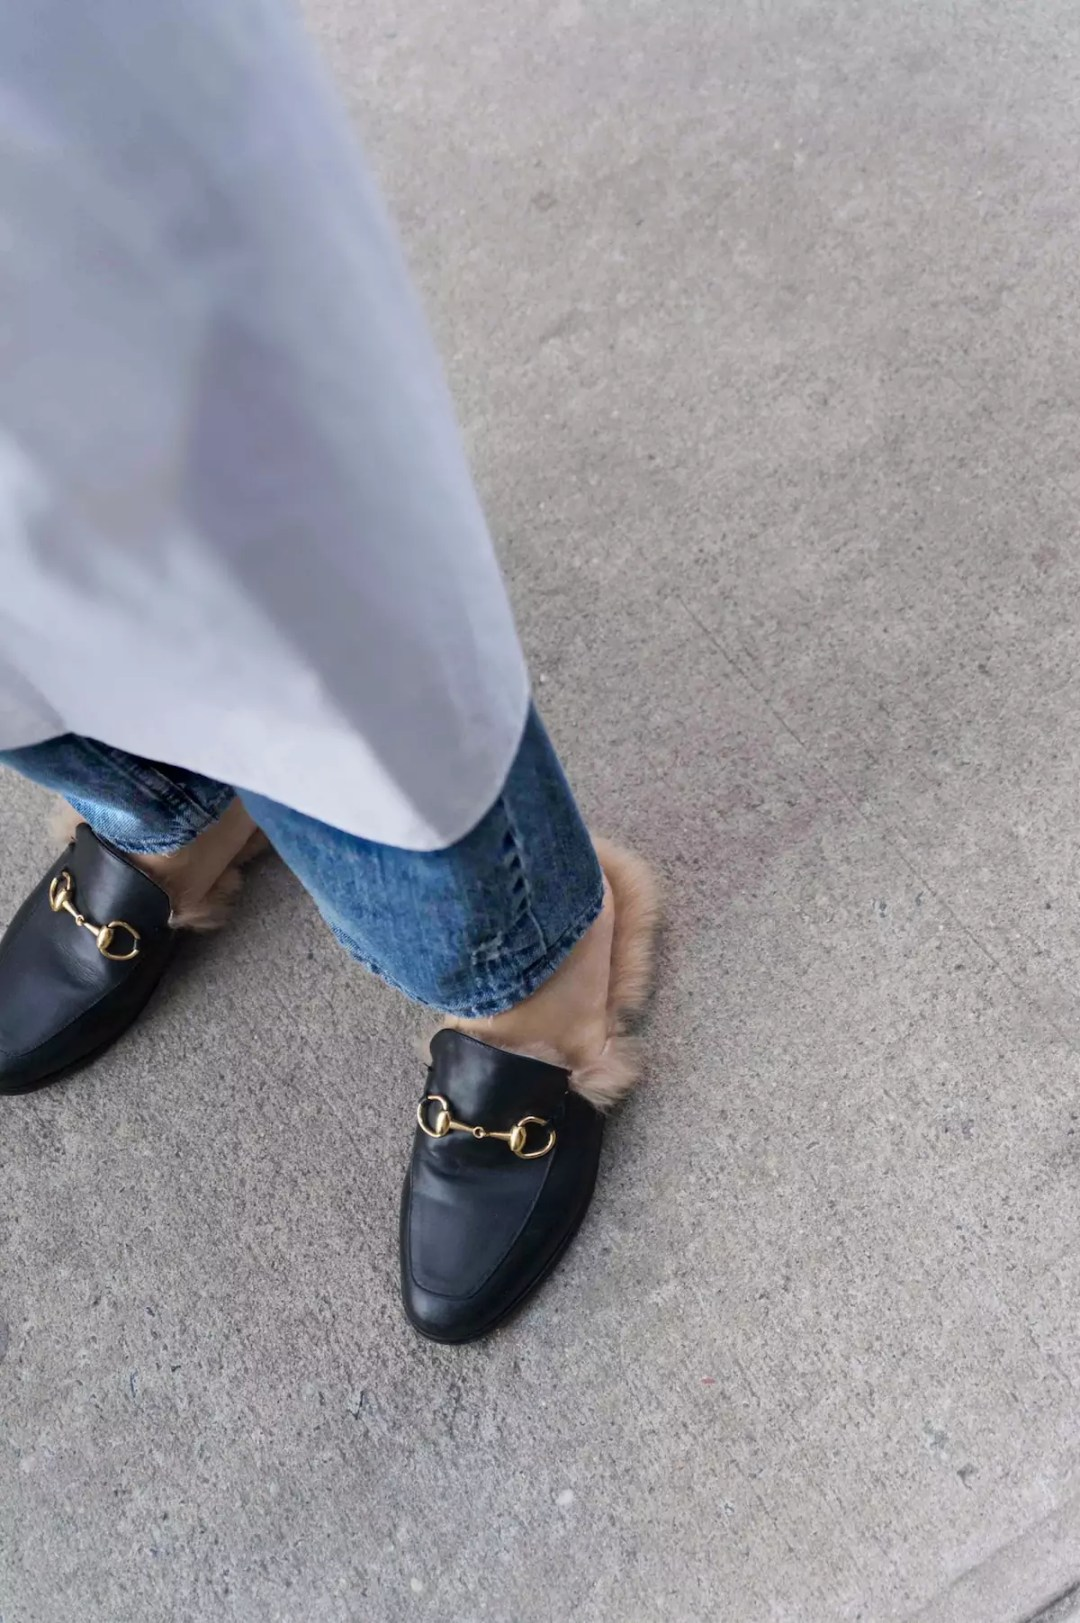 dress-over-jeans-gucci-loafers-alley-girl